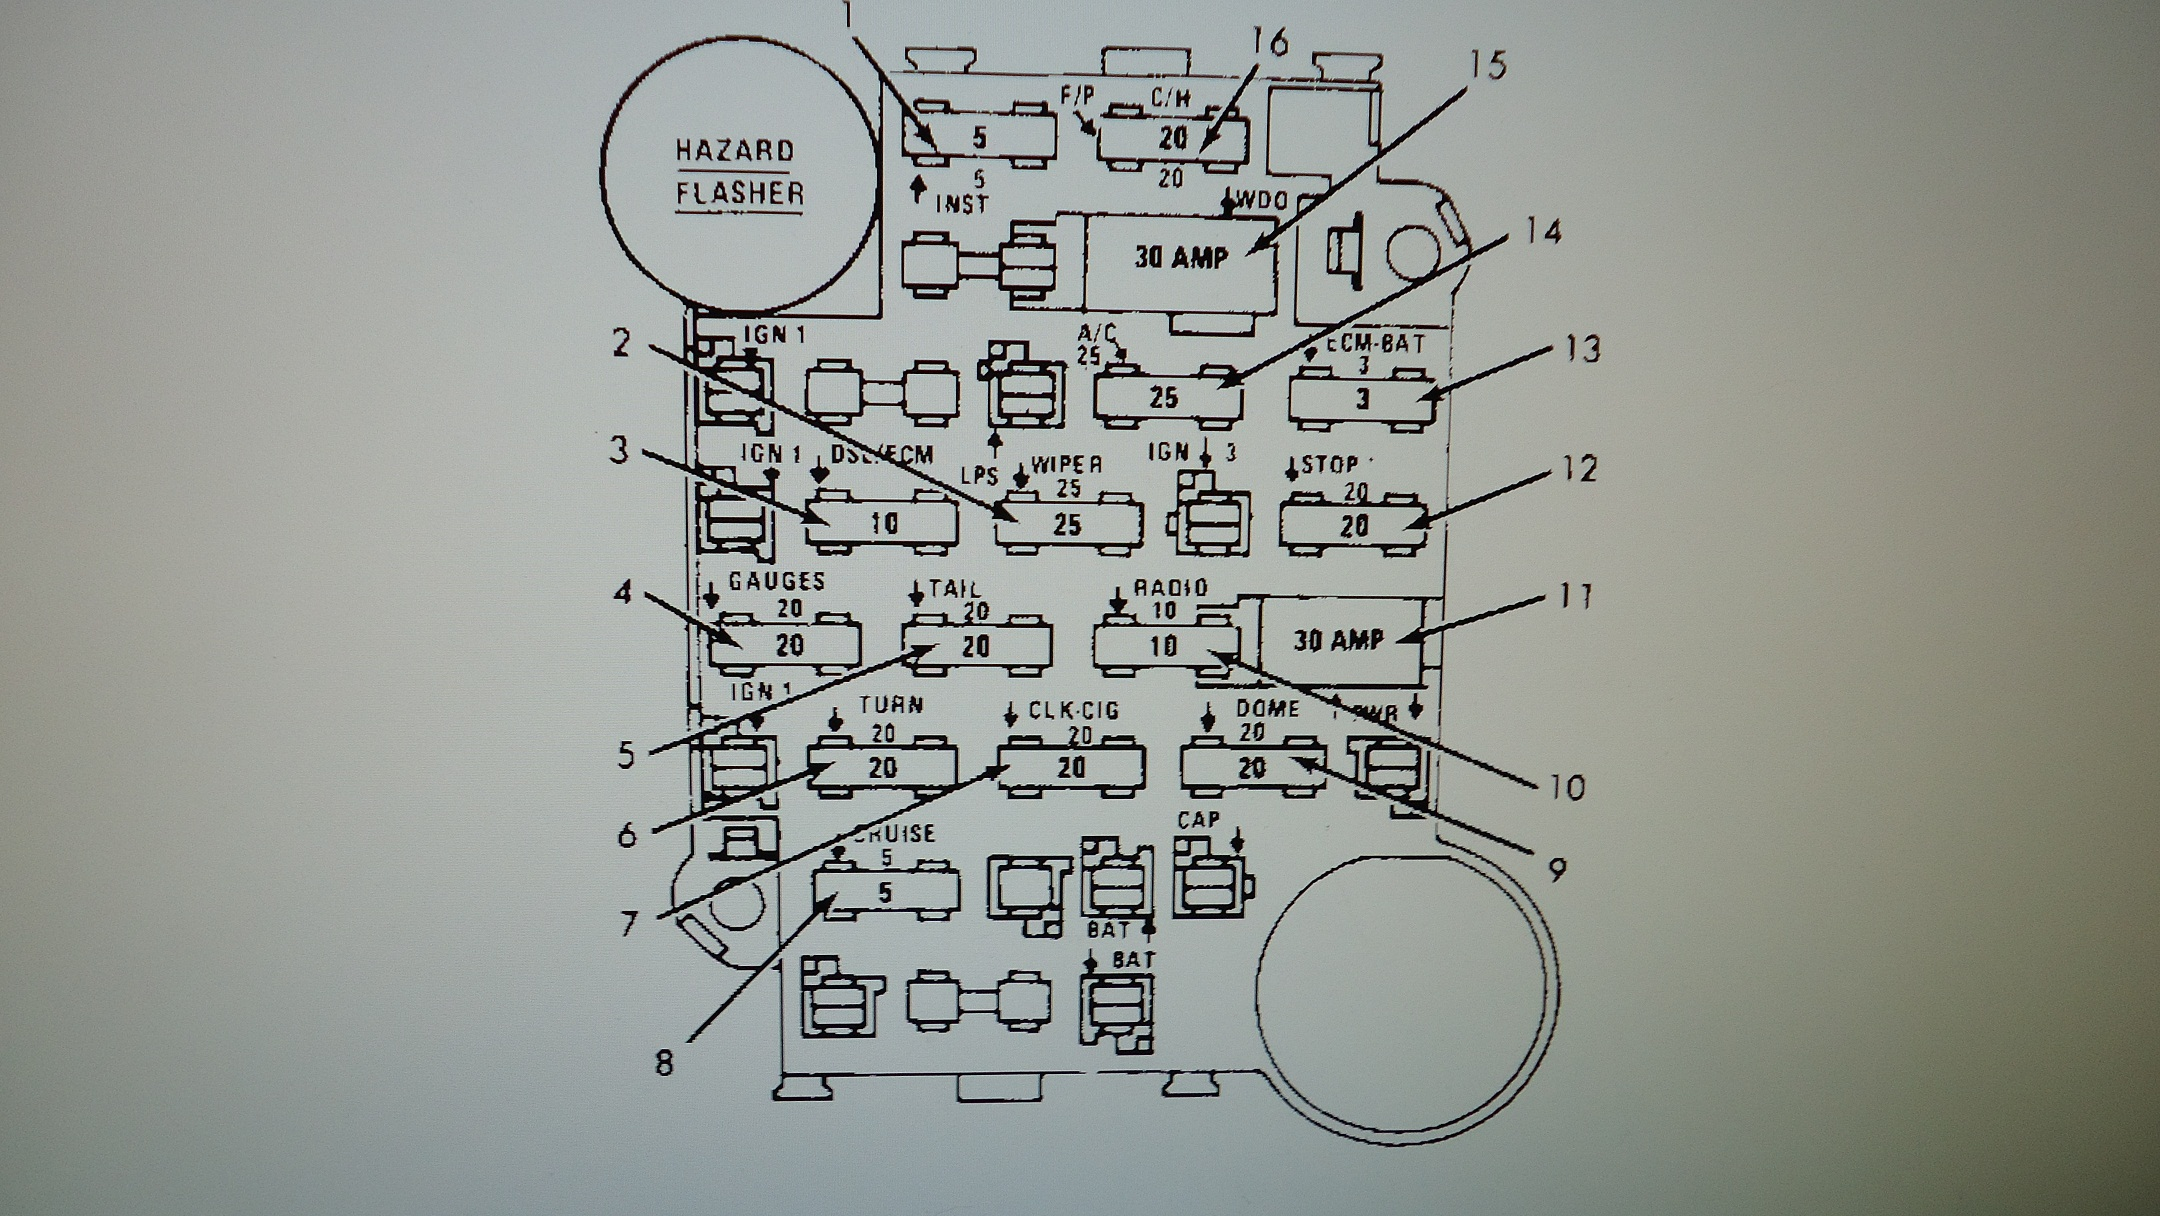 94 Eldorado Wiring Diagram Wiring Diagram Photos For Help Your